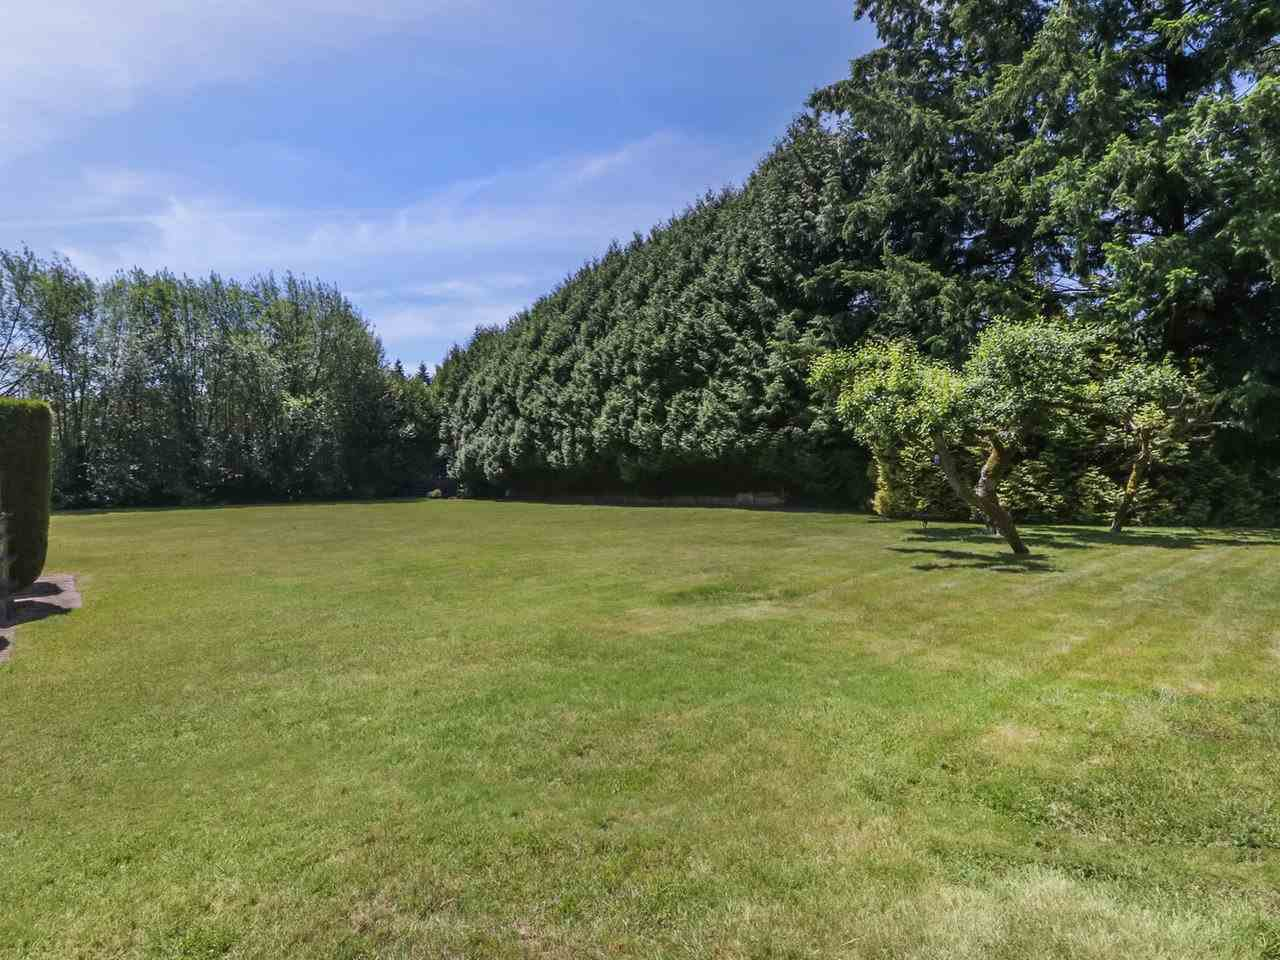 Photo 18: Photos: 13957 32 Avenue in Surrey: Elgin Chantrell House for sale (South Surrey White Rock)  : MLS®# R2466206